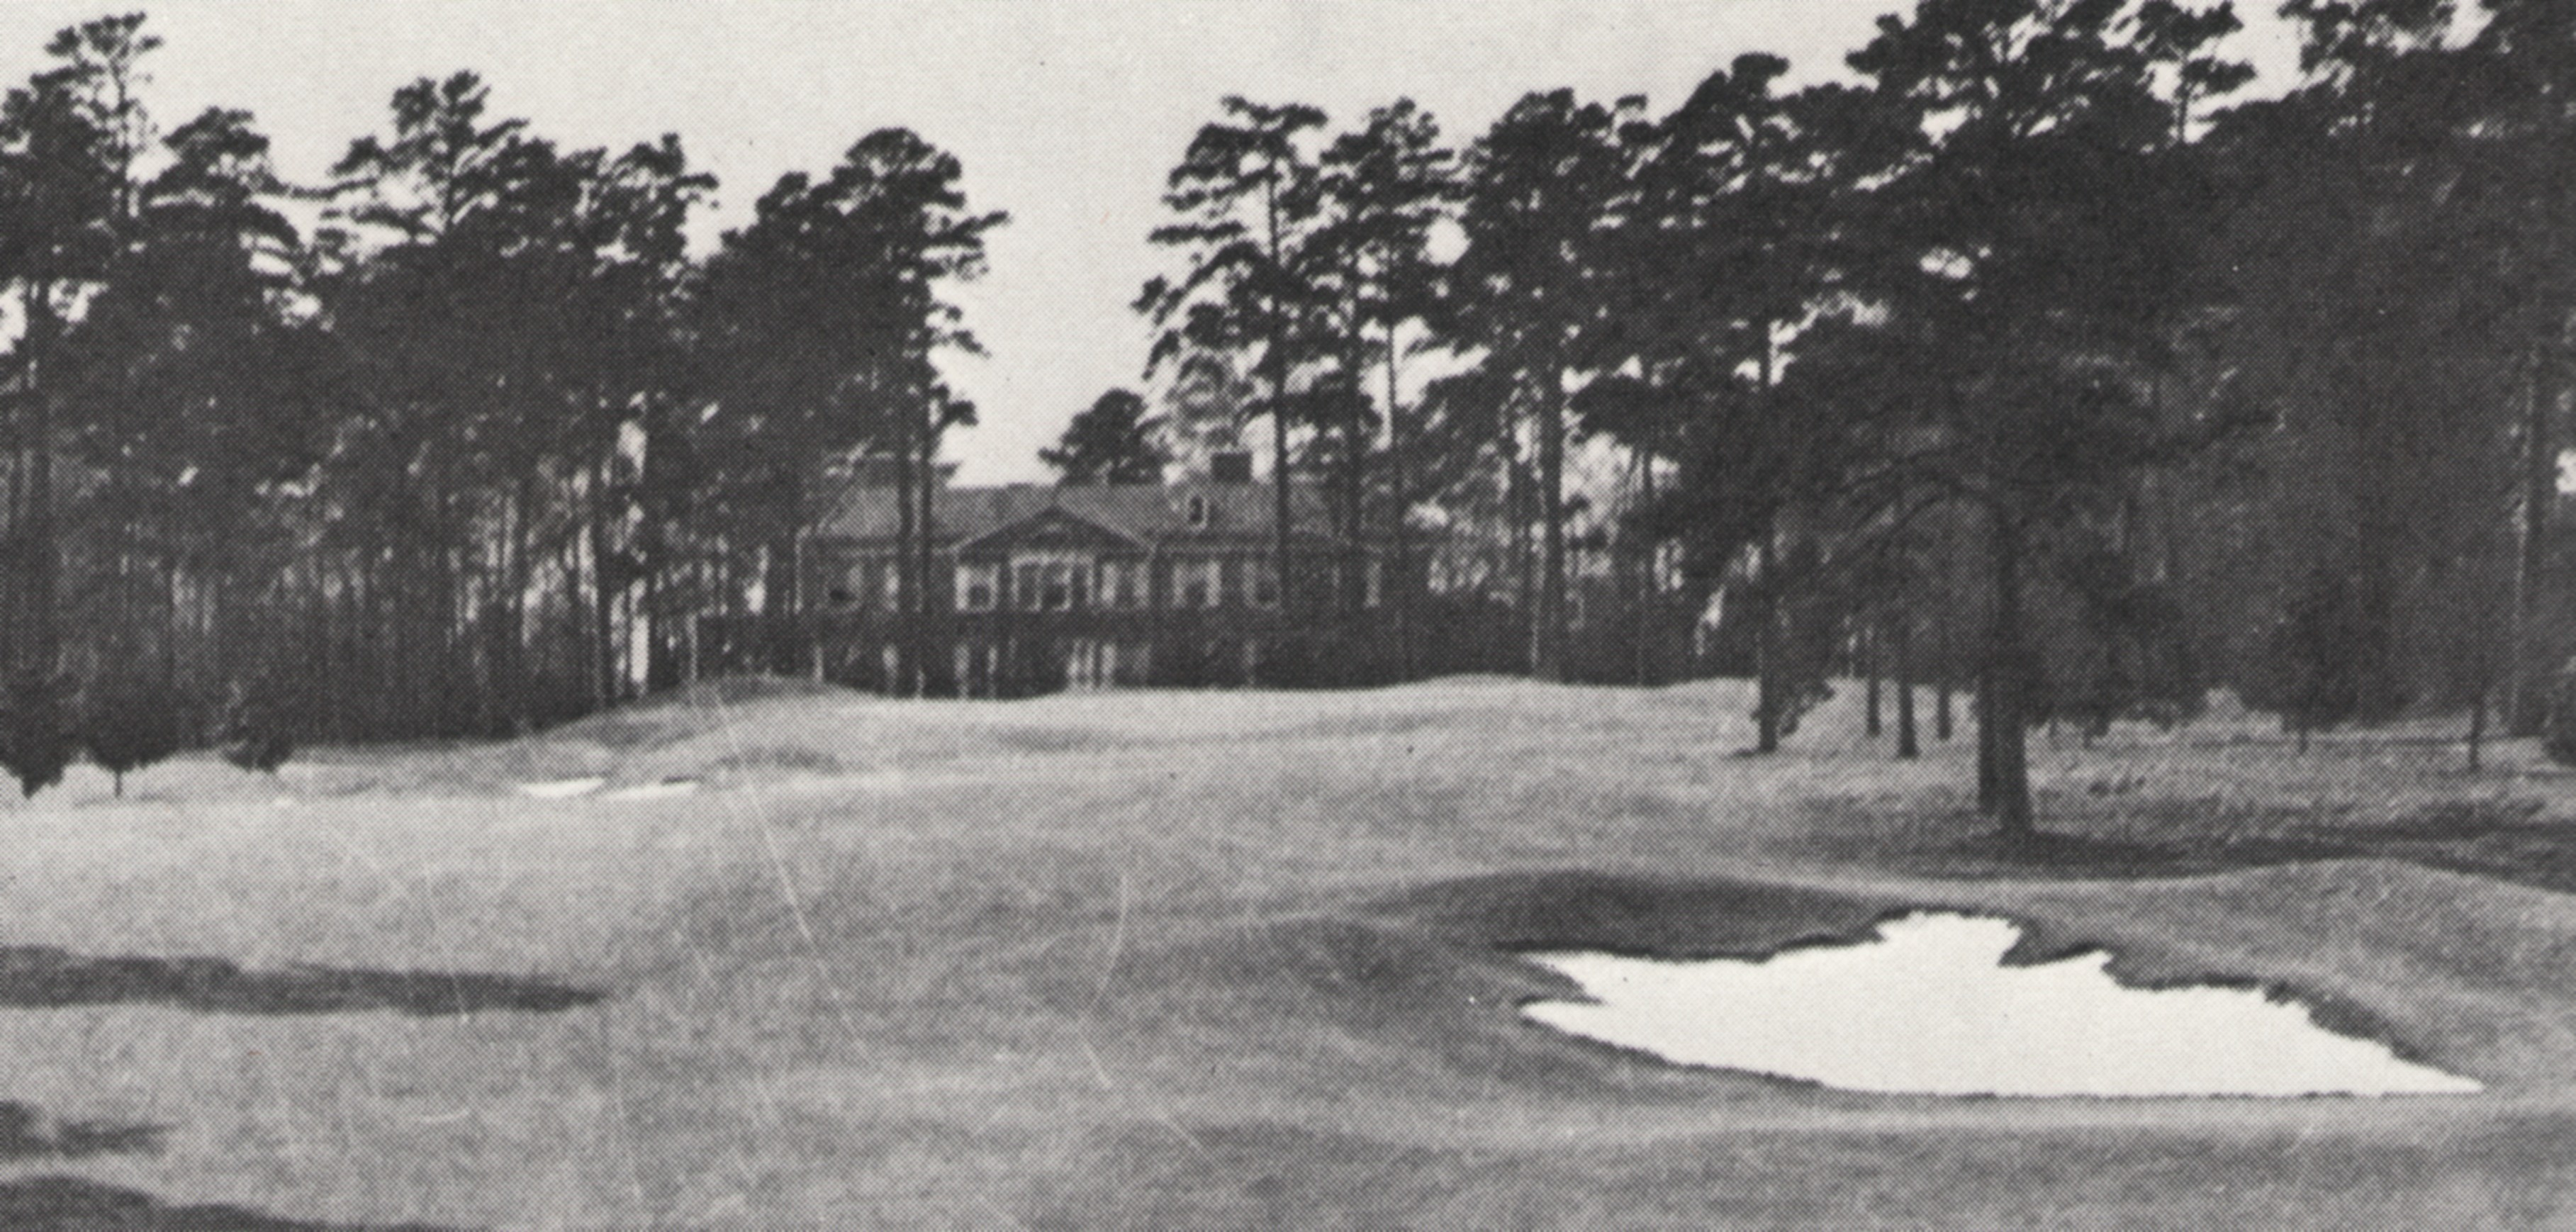 augusta national course map with Want To Buy A Building Lot At Augusta National on Augusta National Wallpaper as well 498871739 in addition Augusta National Golf Club moreover Augusta National Masters Most Luxurious Media Center besides Want To Buy A Building Lot At Augusta National.